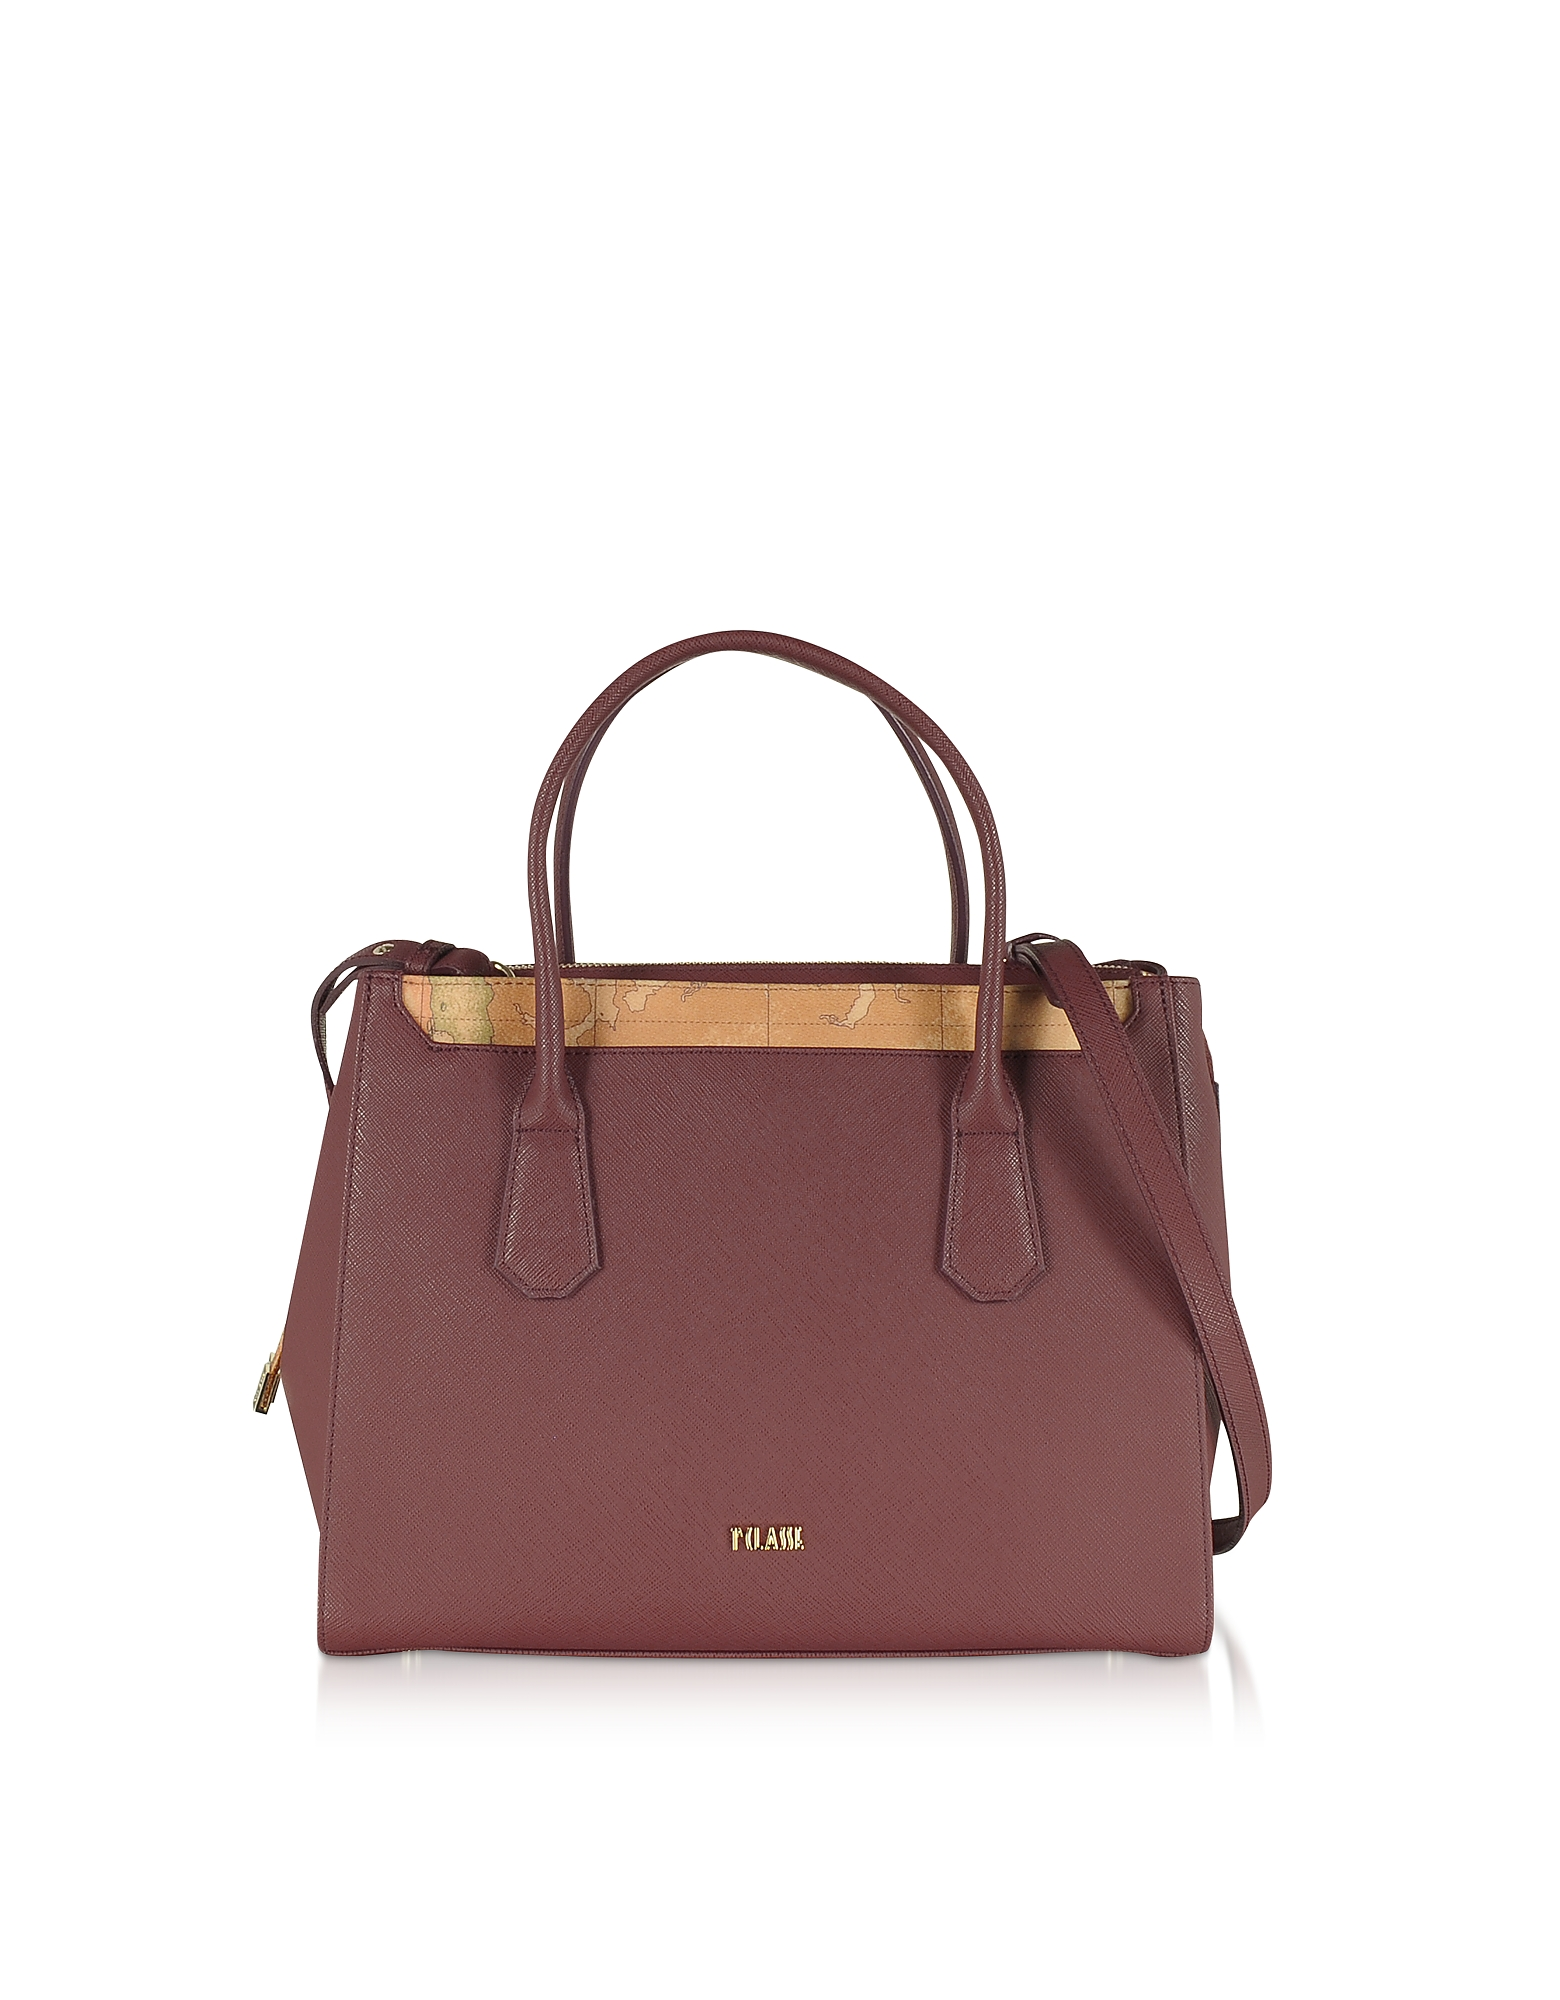 Burgundy Saffiano Leather Tote Bag w/ Geo Print Details